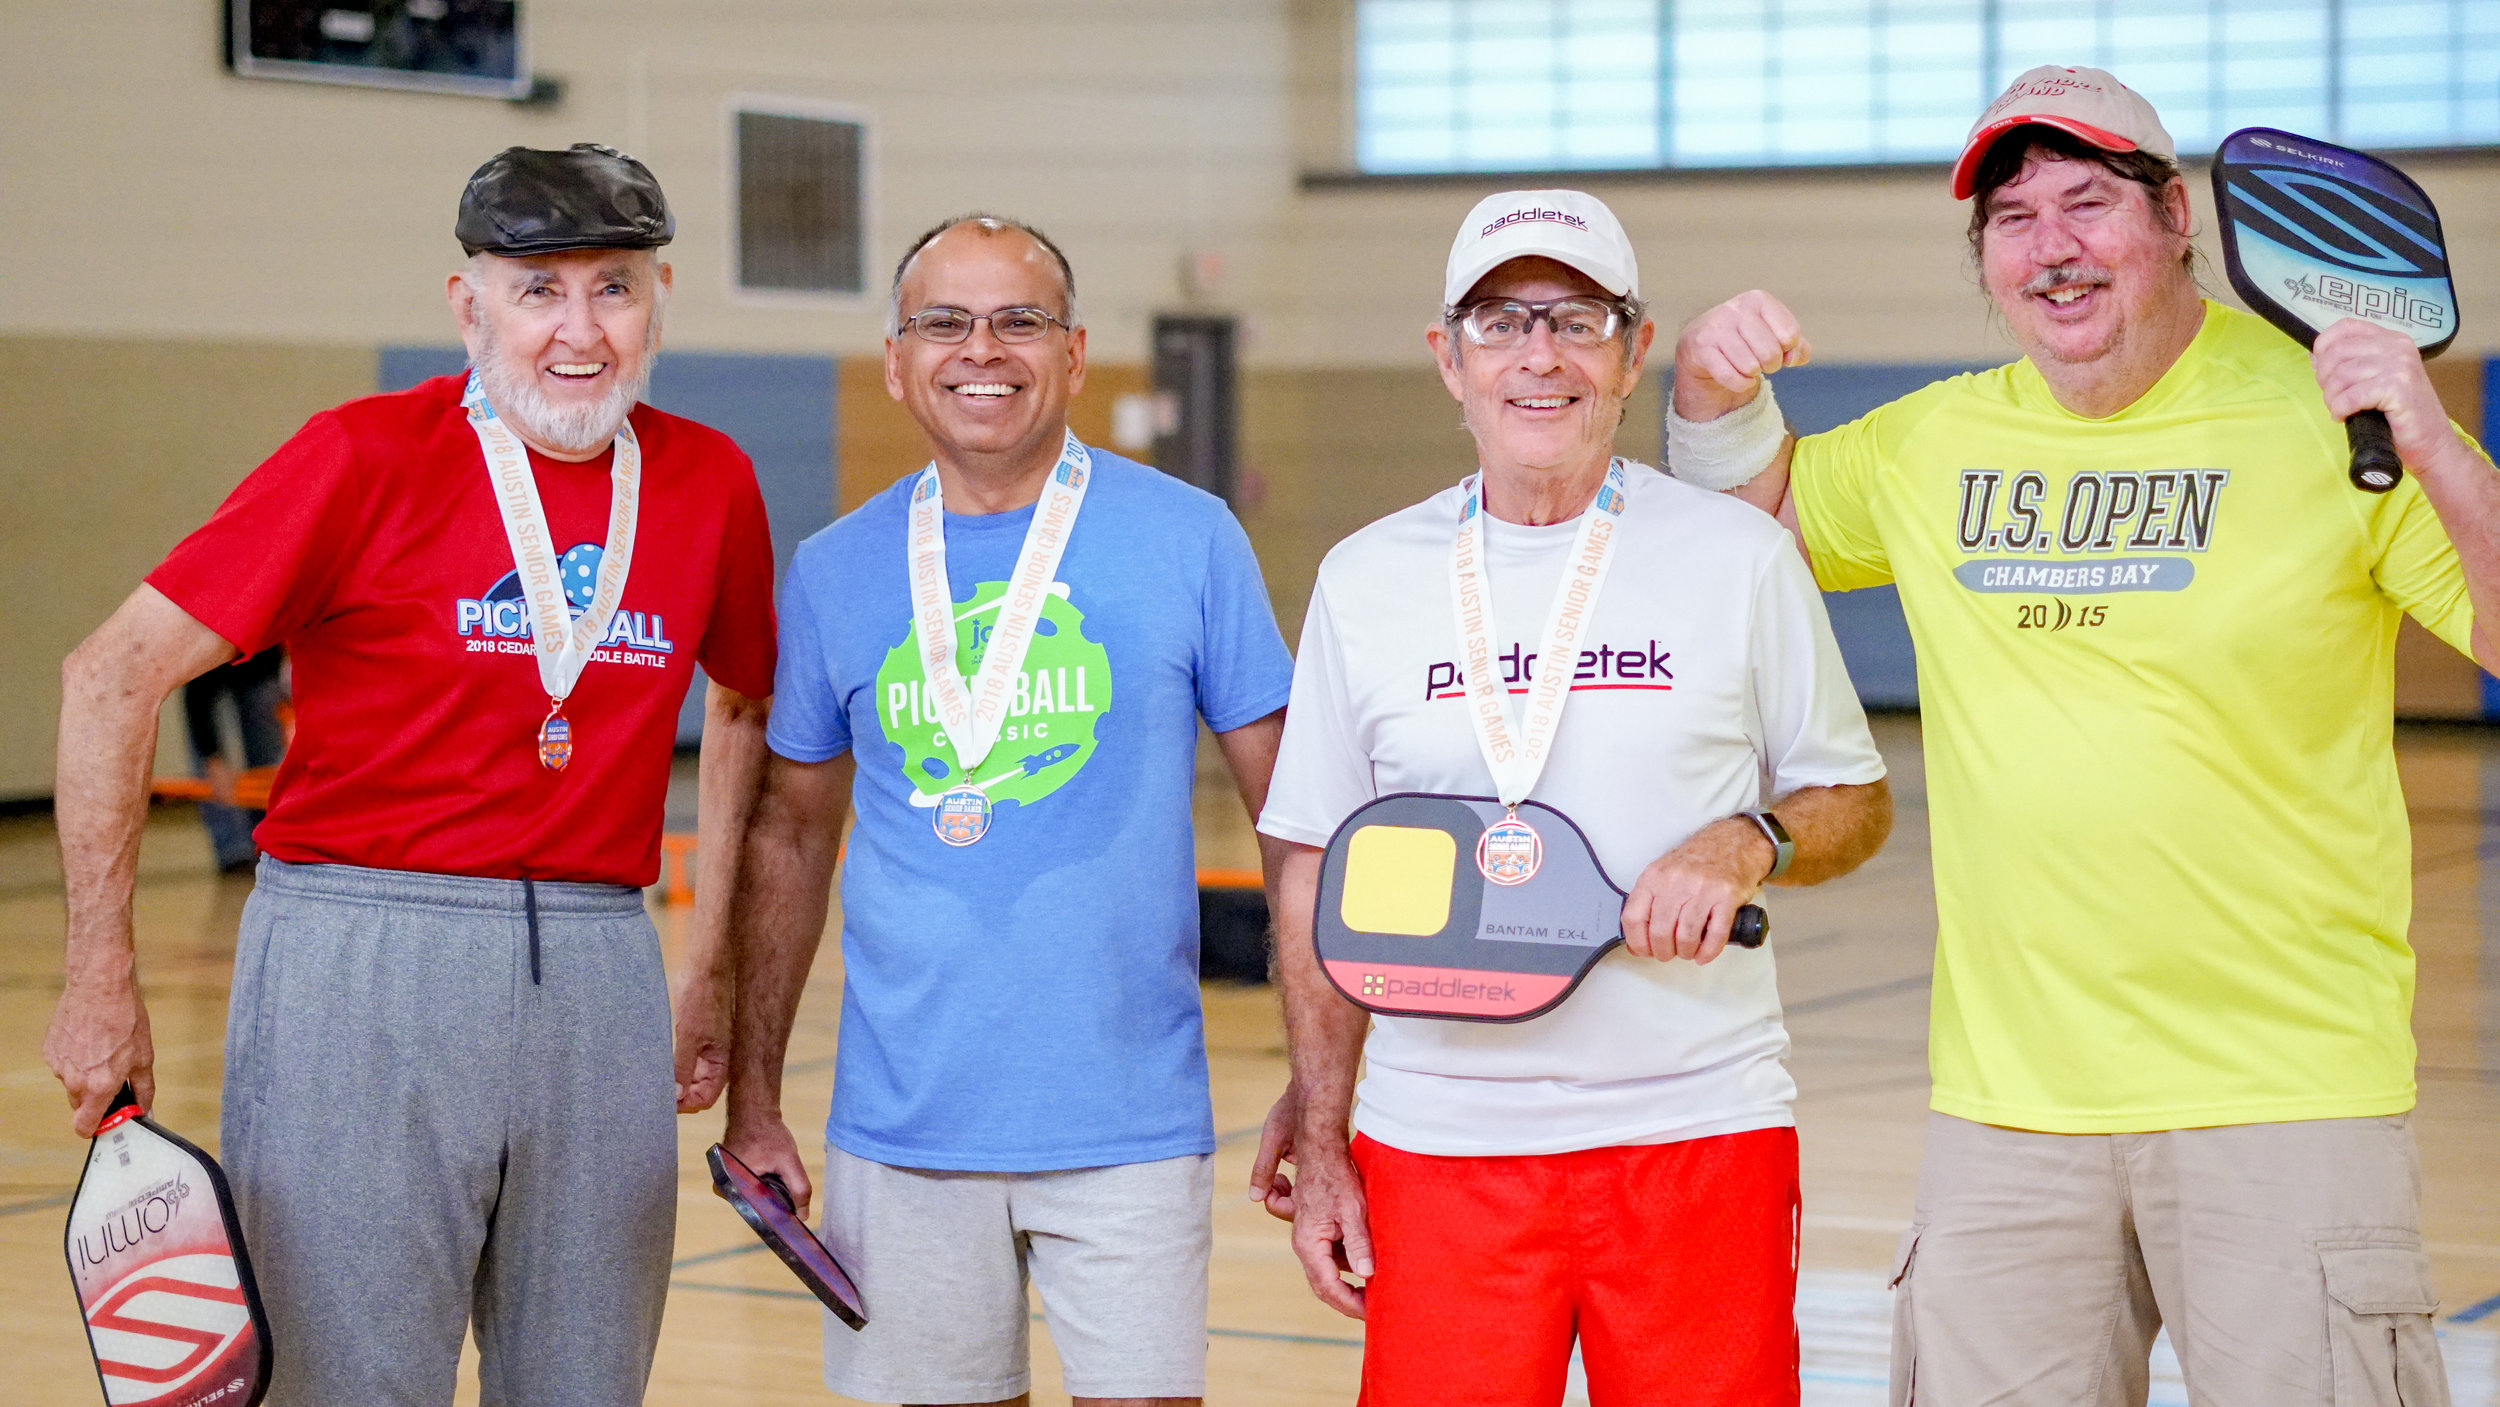 Pickleball-42.jpg